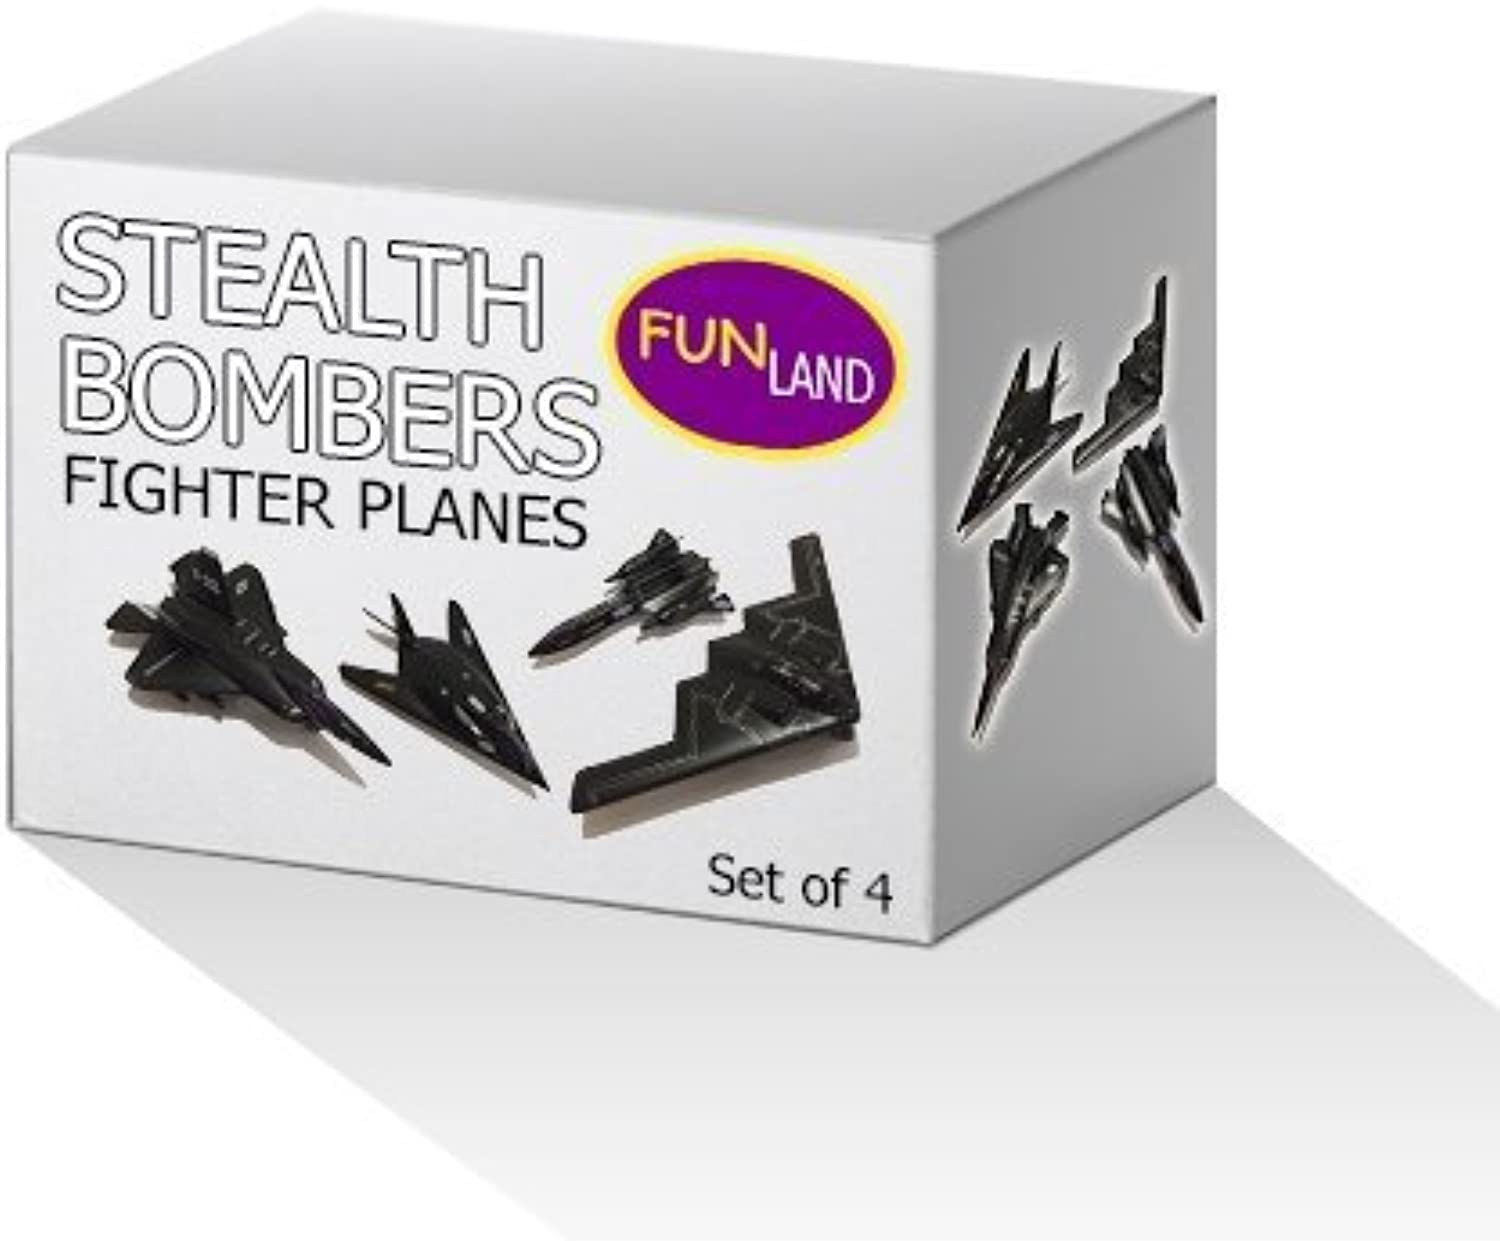 5  Die Cast Metal Pull Back Stealth Bombers and Fighter Planes Set of 4 by Fun Land